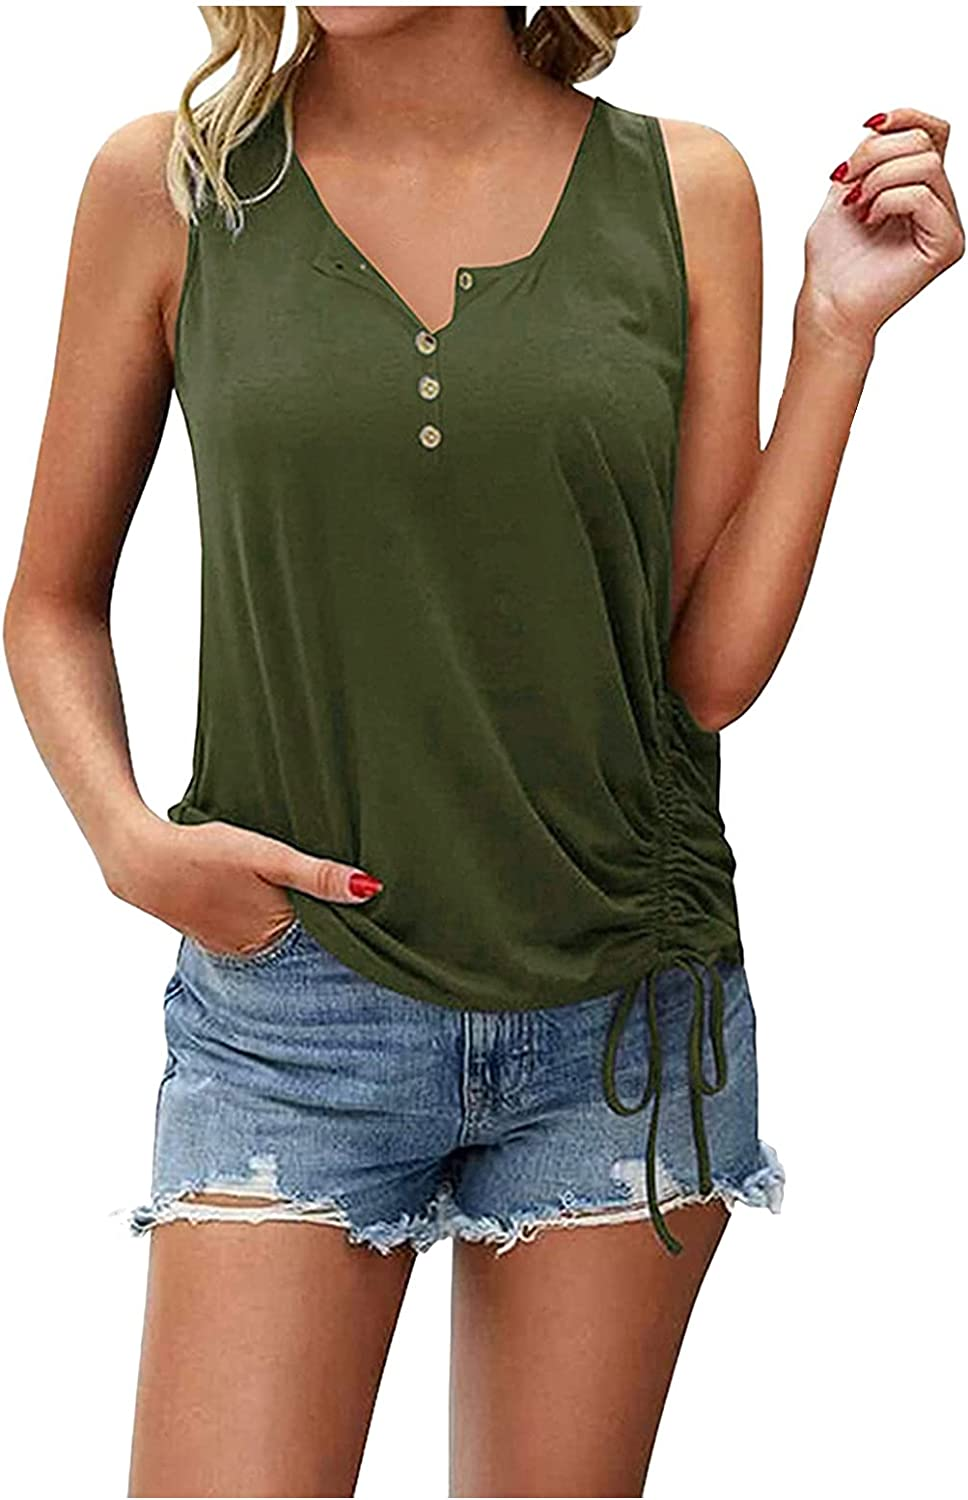 ManxiVoo Women Casual Button Down Round Collar Sleeveless Drawstring Ruched Side Tank Top Blouse Shirt